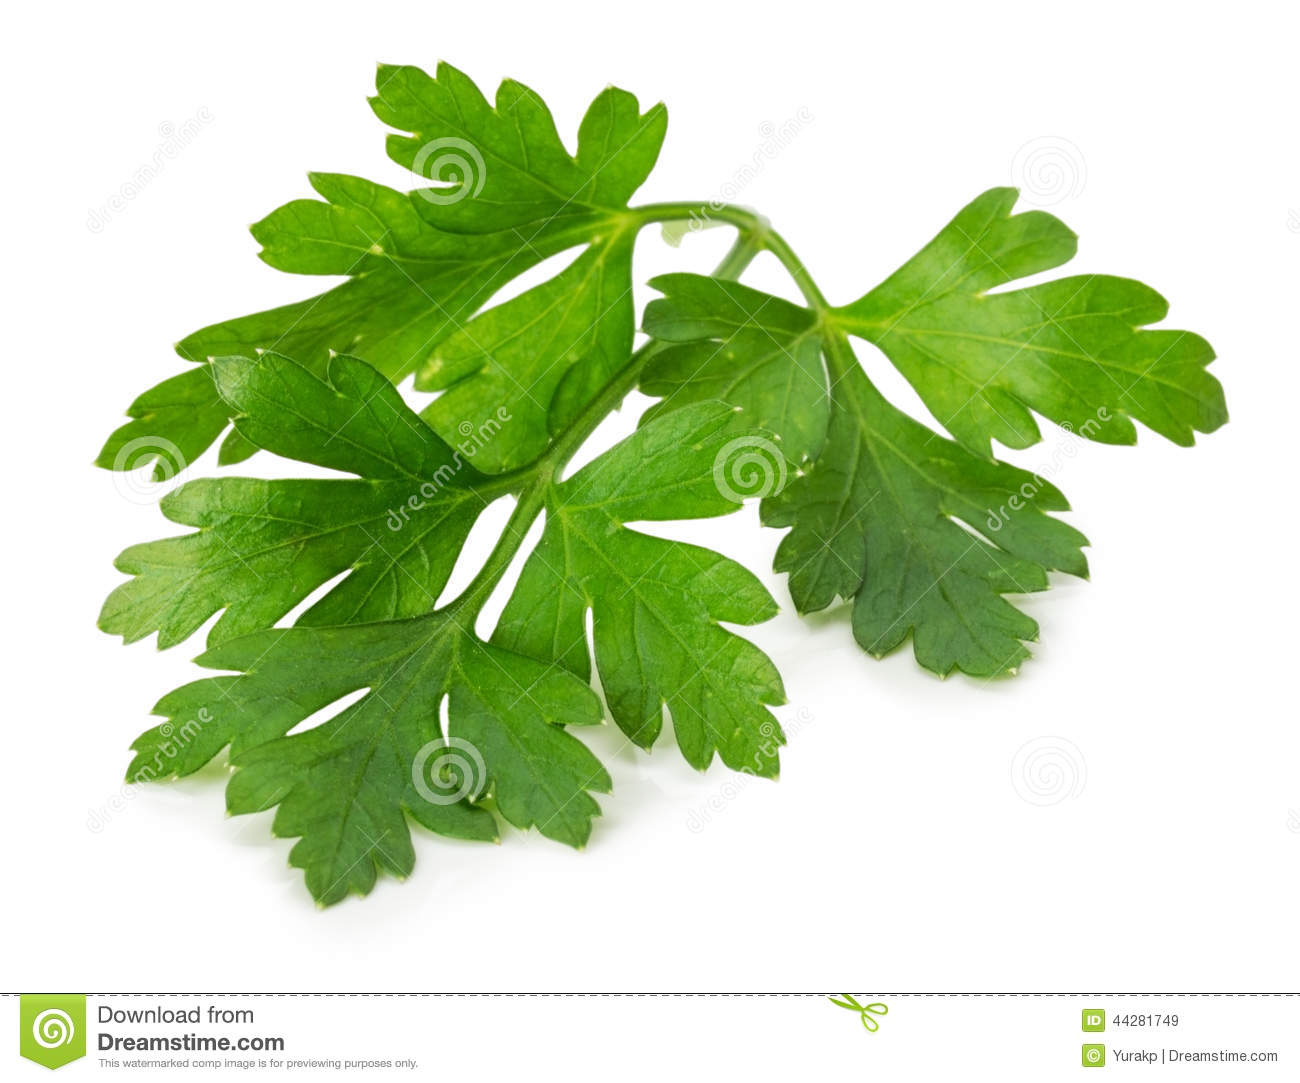 Parsley Illustration Parsley leaves isolated on